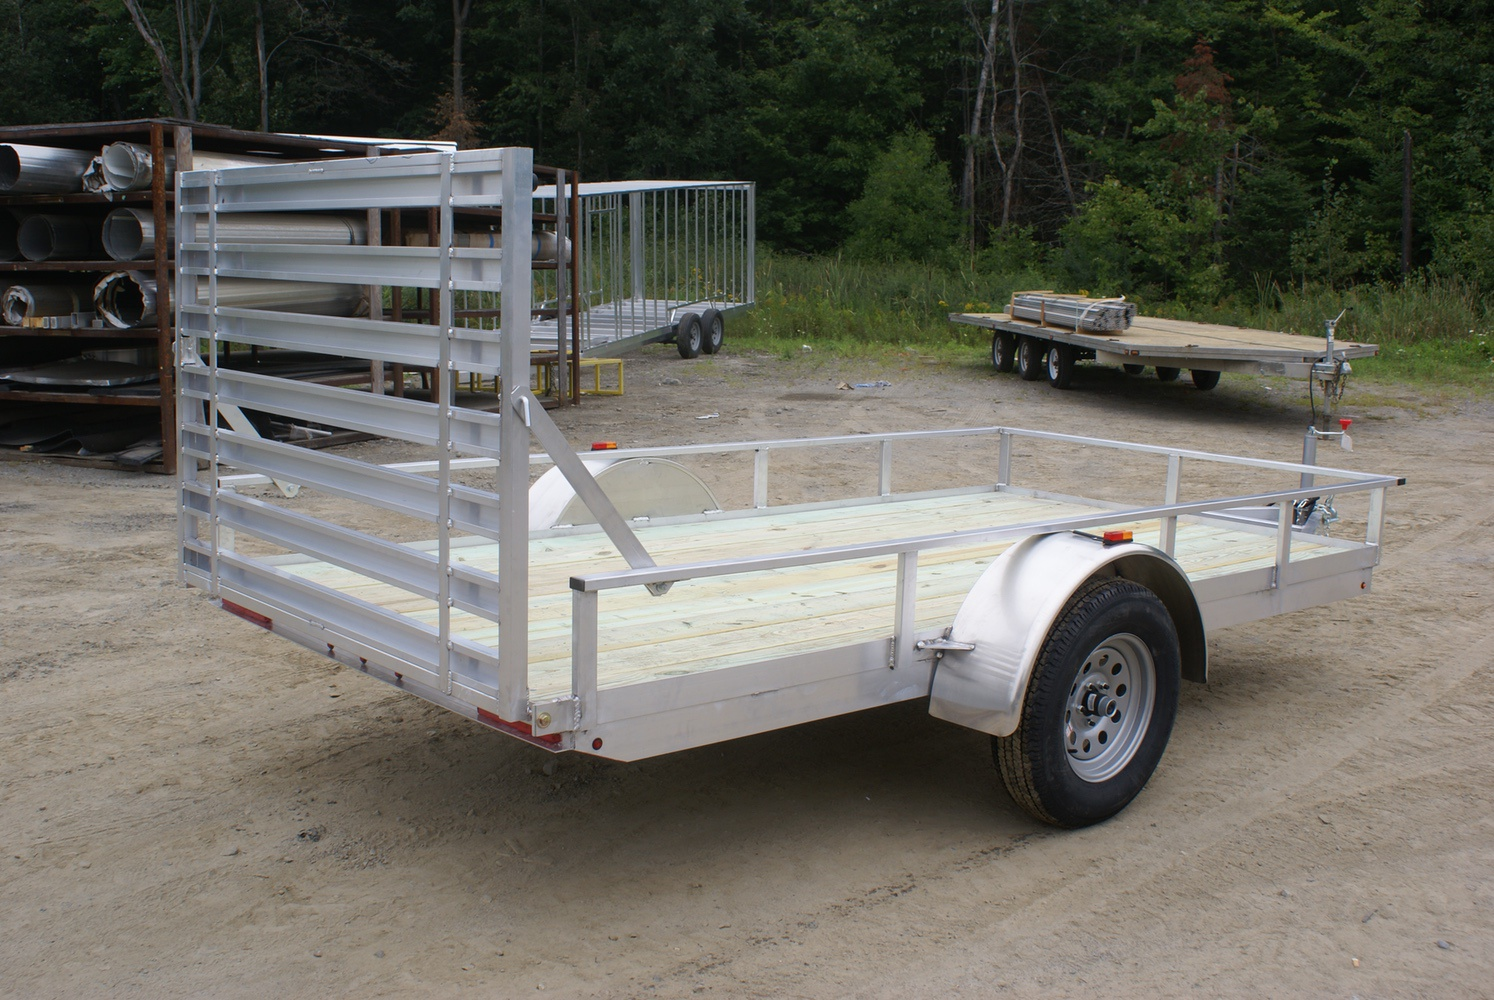 2019 Polaris Trailers PU72x10WR-2.0 in Milford, New Hampshire